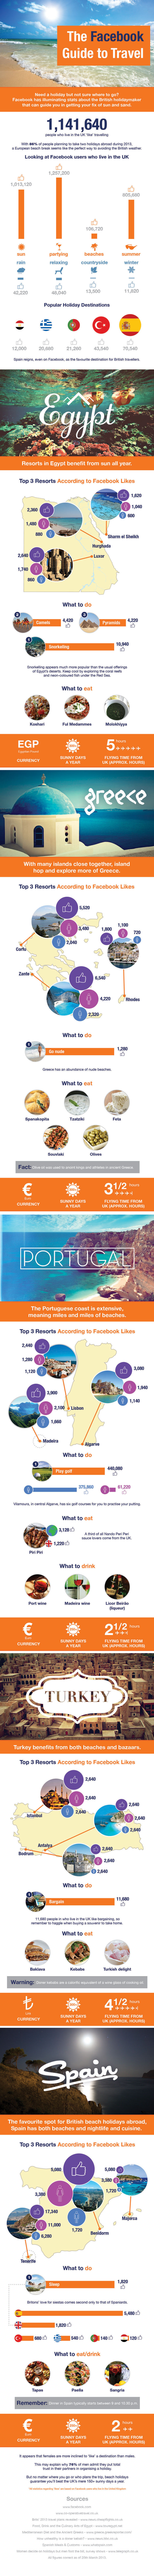 A Facebook Guide to Travel